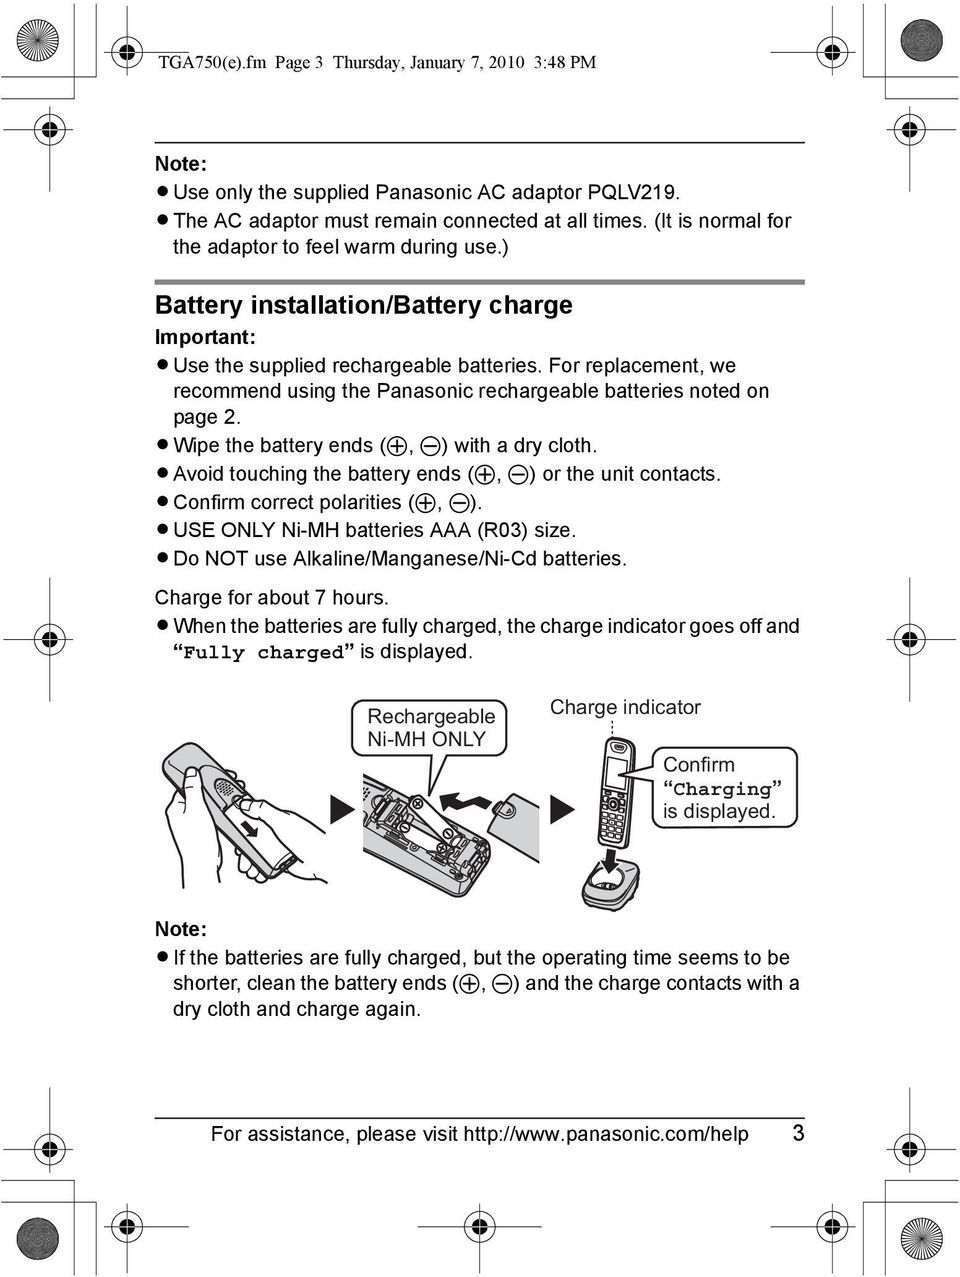 For replacement, we recommend using the Panasonic rechargeable batteries noted on page 2. LWipe the battery ends (S, T) with a dry cloth. LAvoid touching the battery ends (S, T) or the unit contacts.